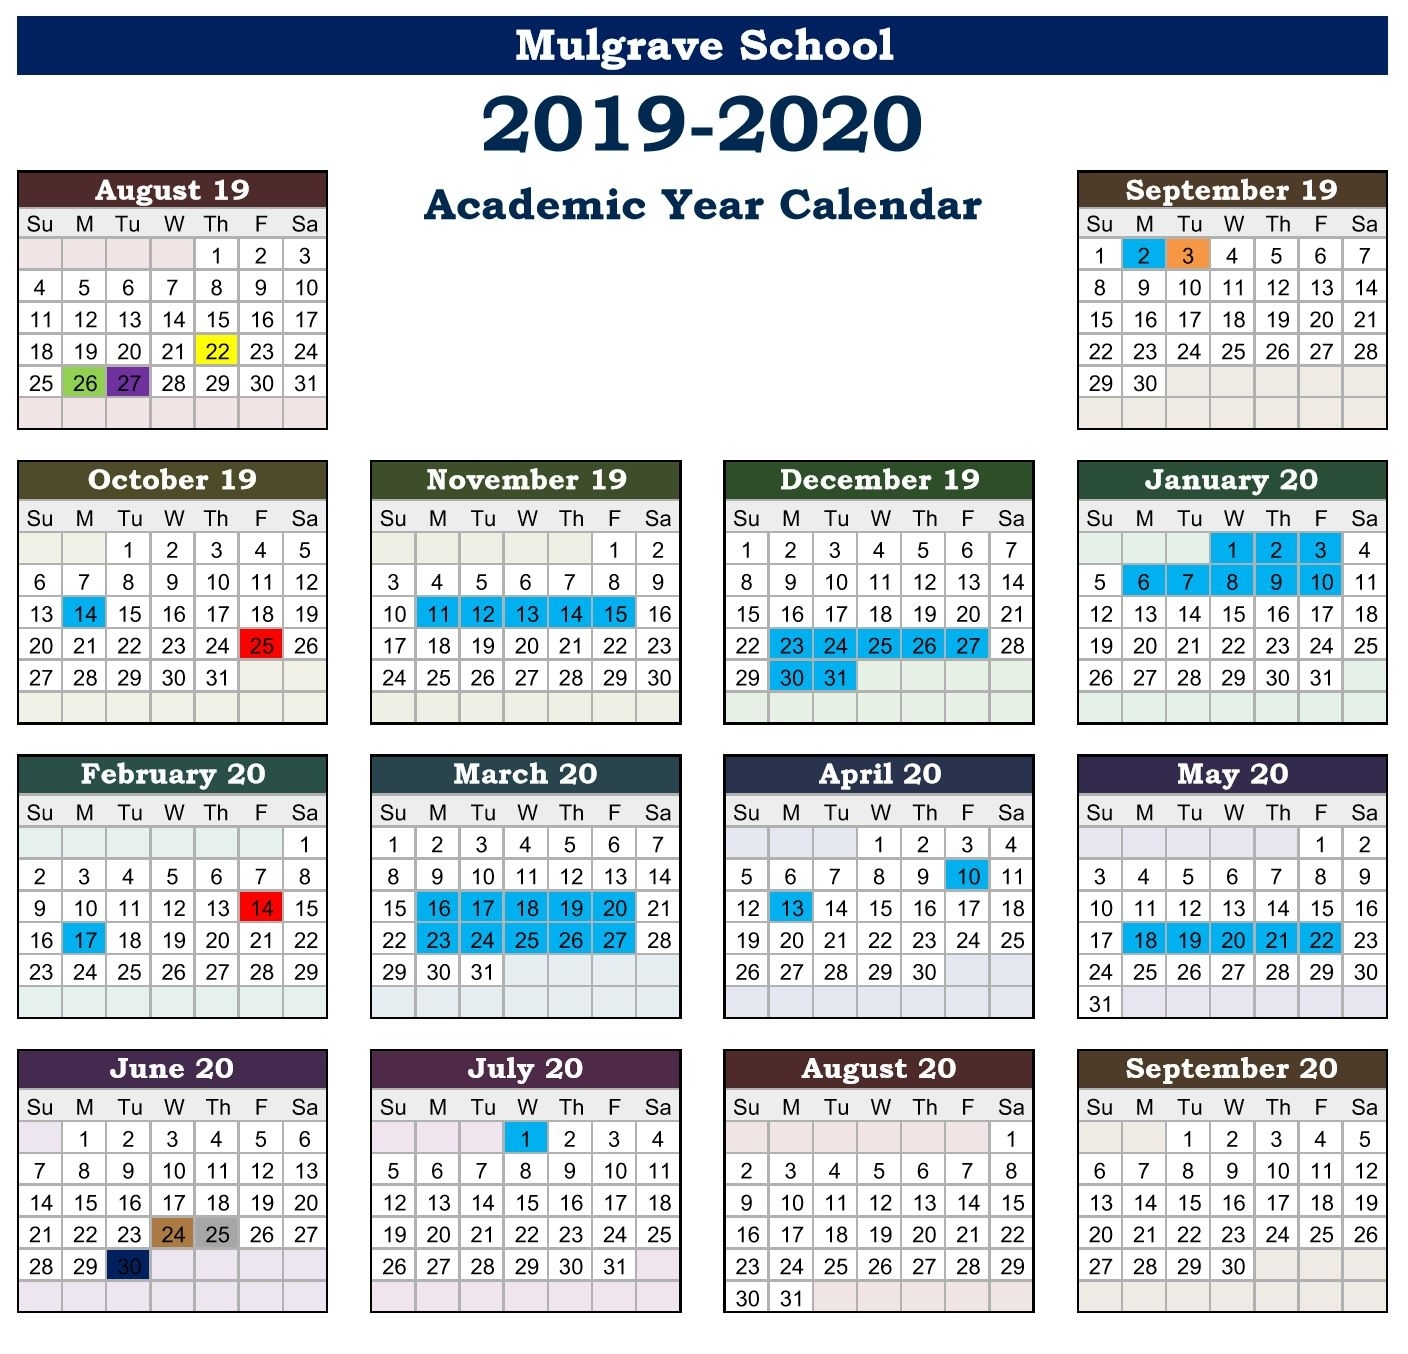 Mulgrave School - Calendars with regard to U Of M Calander 2019-2020